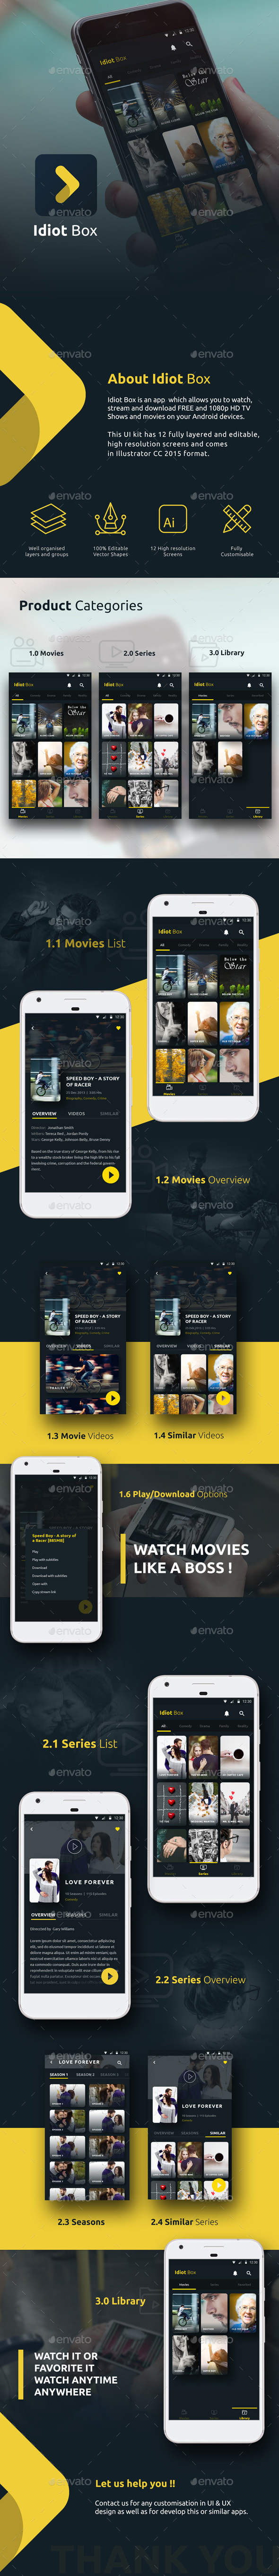 GraphicRiver Online Movie Streaming App Idiot Box 20778031